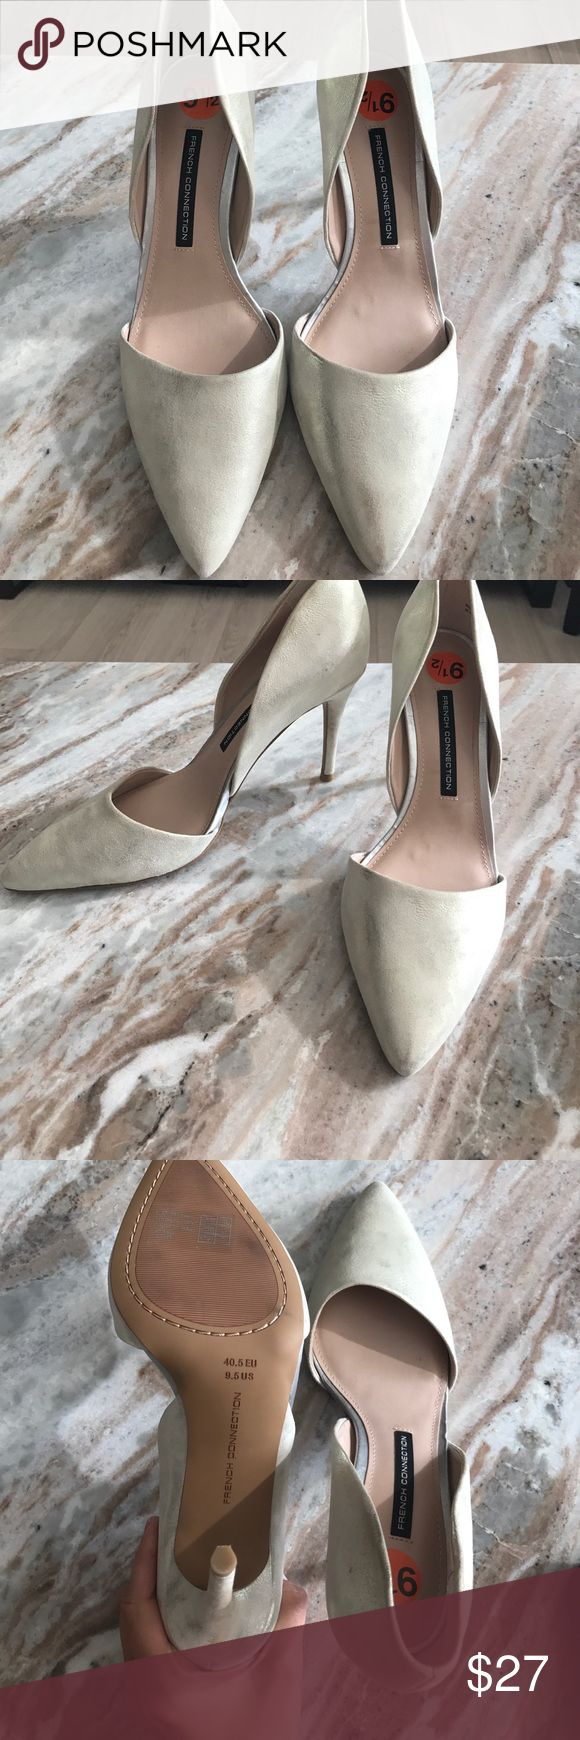 NBW French Connection stylish gold stilletos NBW gold suede French Connection stilletos. Super stylish and comfortable heels that can be worn at work or on a night out! Padding on the sole for extra comfort. French Connection Shoes Heels